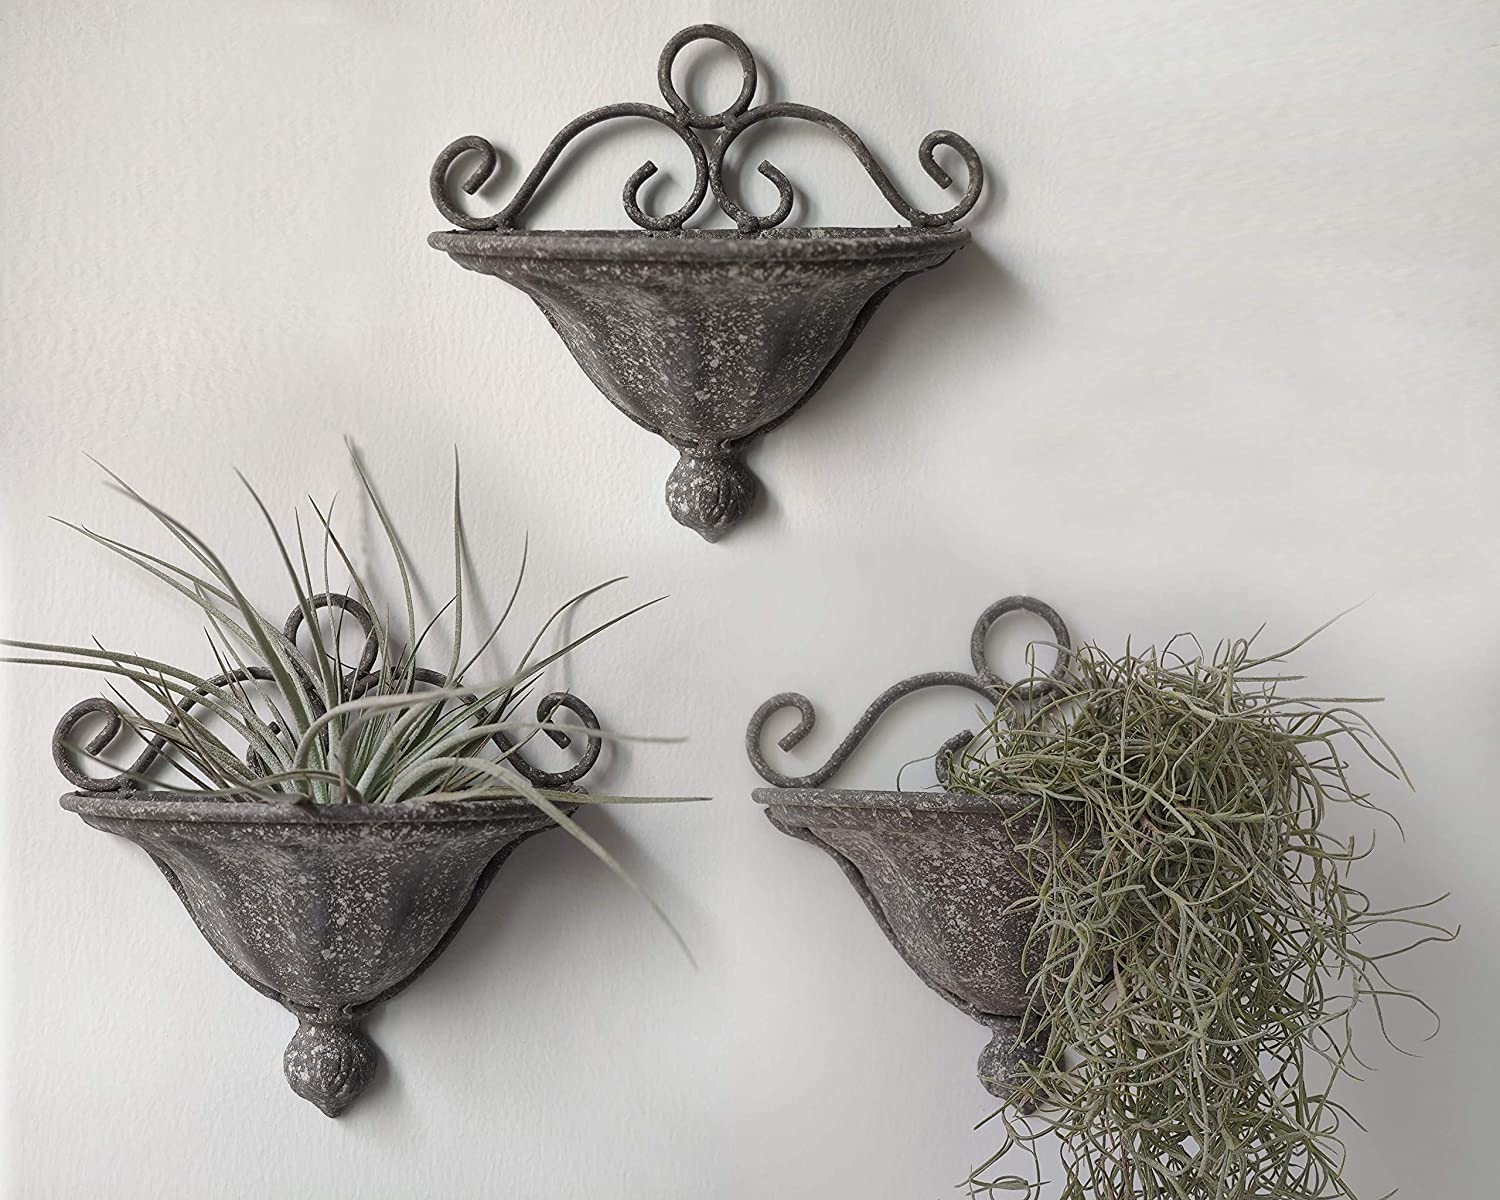 RISEON 3 PCS Vintage Iron Hanging Wall Planter, Farmhouse Wall Hanging Planter Basket Plant Flower Wall Pocket Holder Decor for Garden Porch Balcony Indoor Outdoor Herbs, Faux Succulents, Air Plants